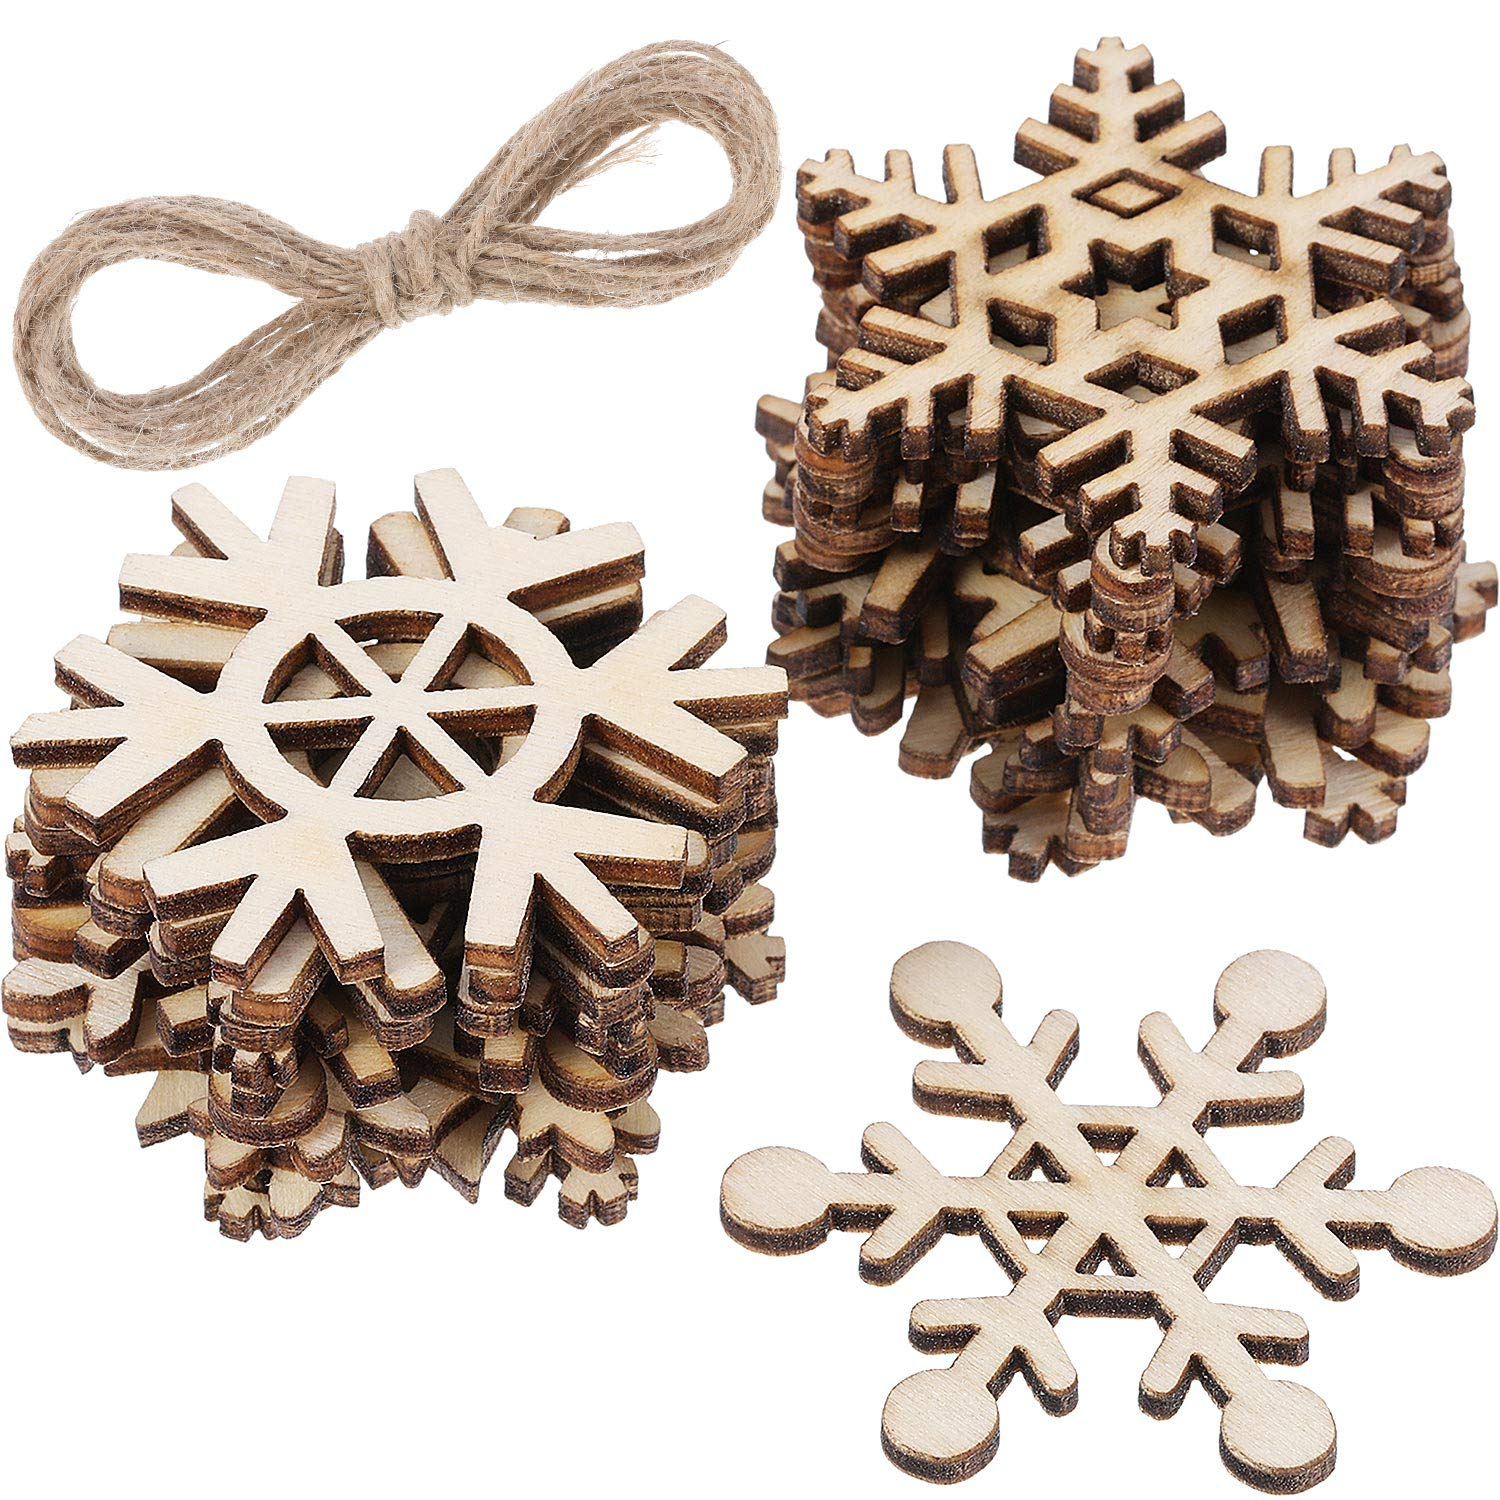 Hestya 50 Pieces Wooden Snowflake DIY Wood Crafts Christmas Tree Ornaments Hanging Xmas Decorations Strings